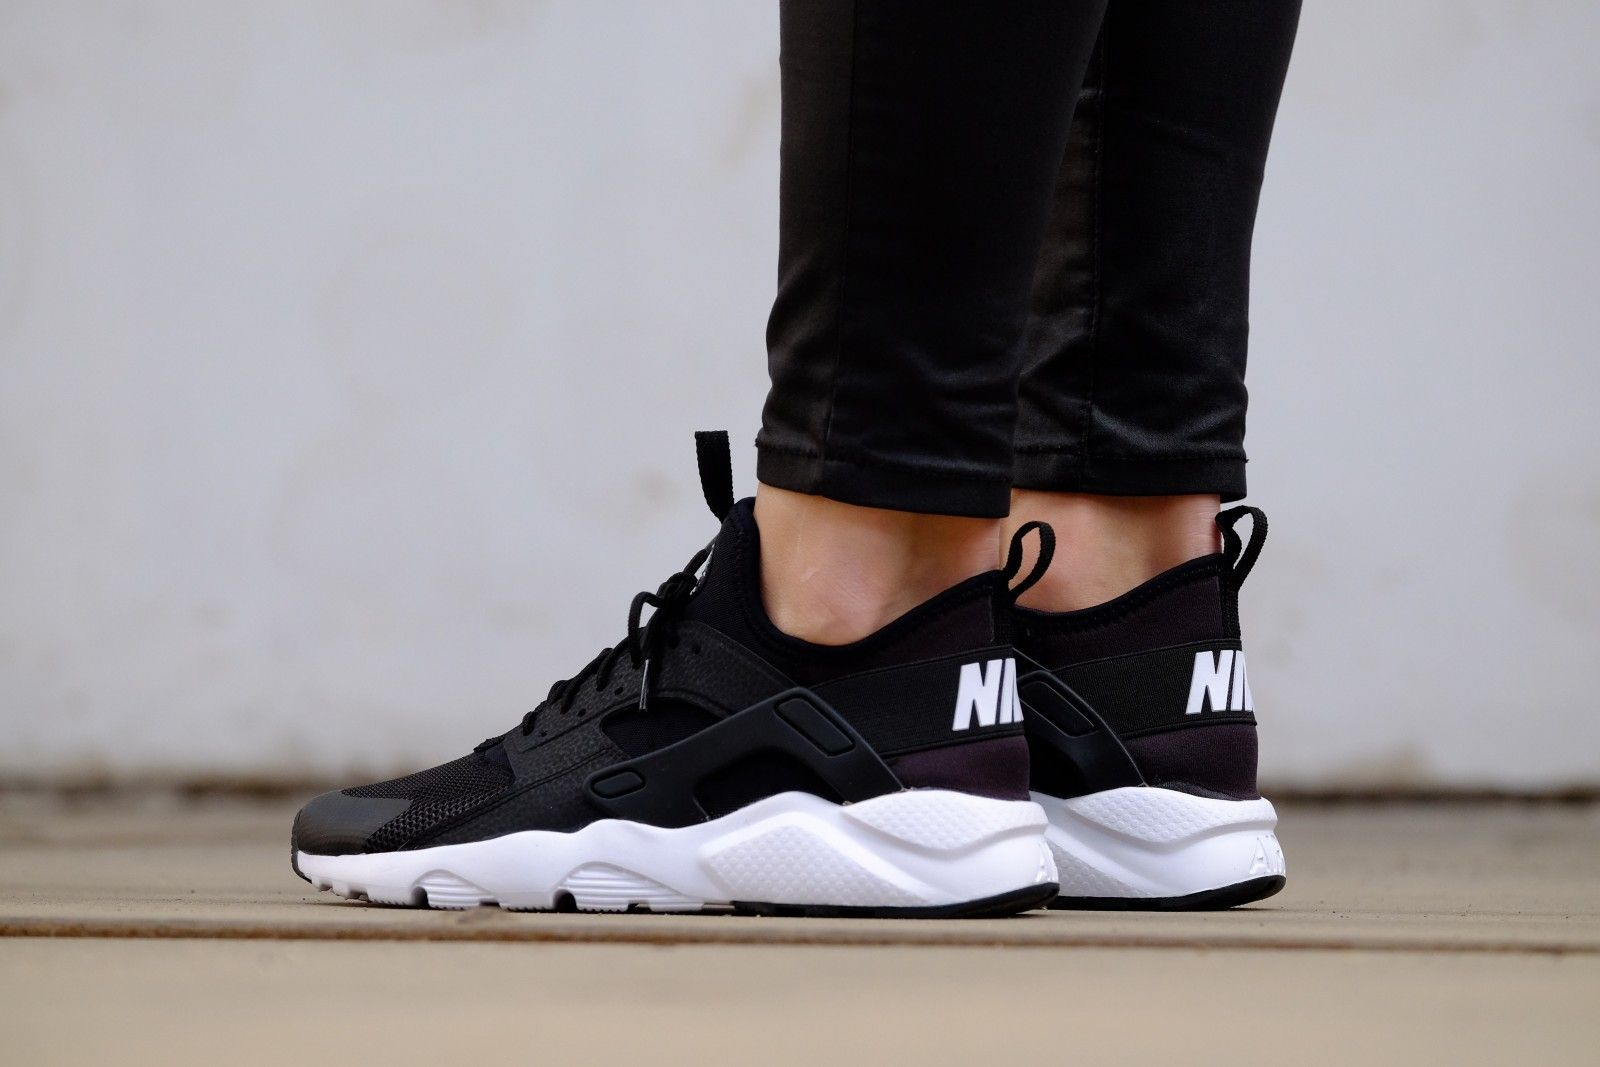 uk availability 6a082 c0a11 Nike Air Huarache Run Ultra GS Black  White - 847569-002